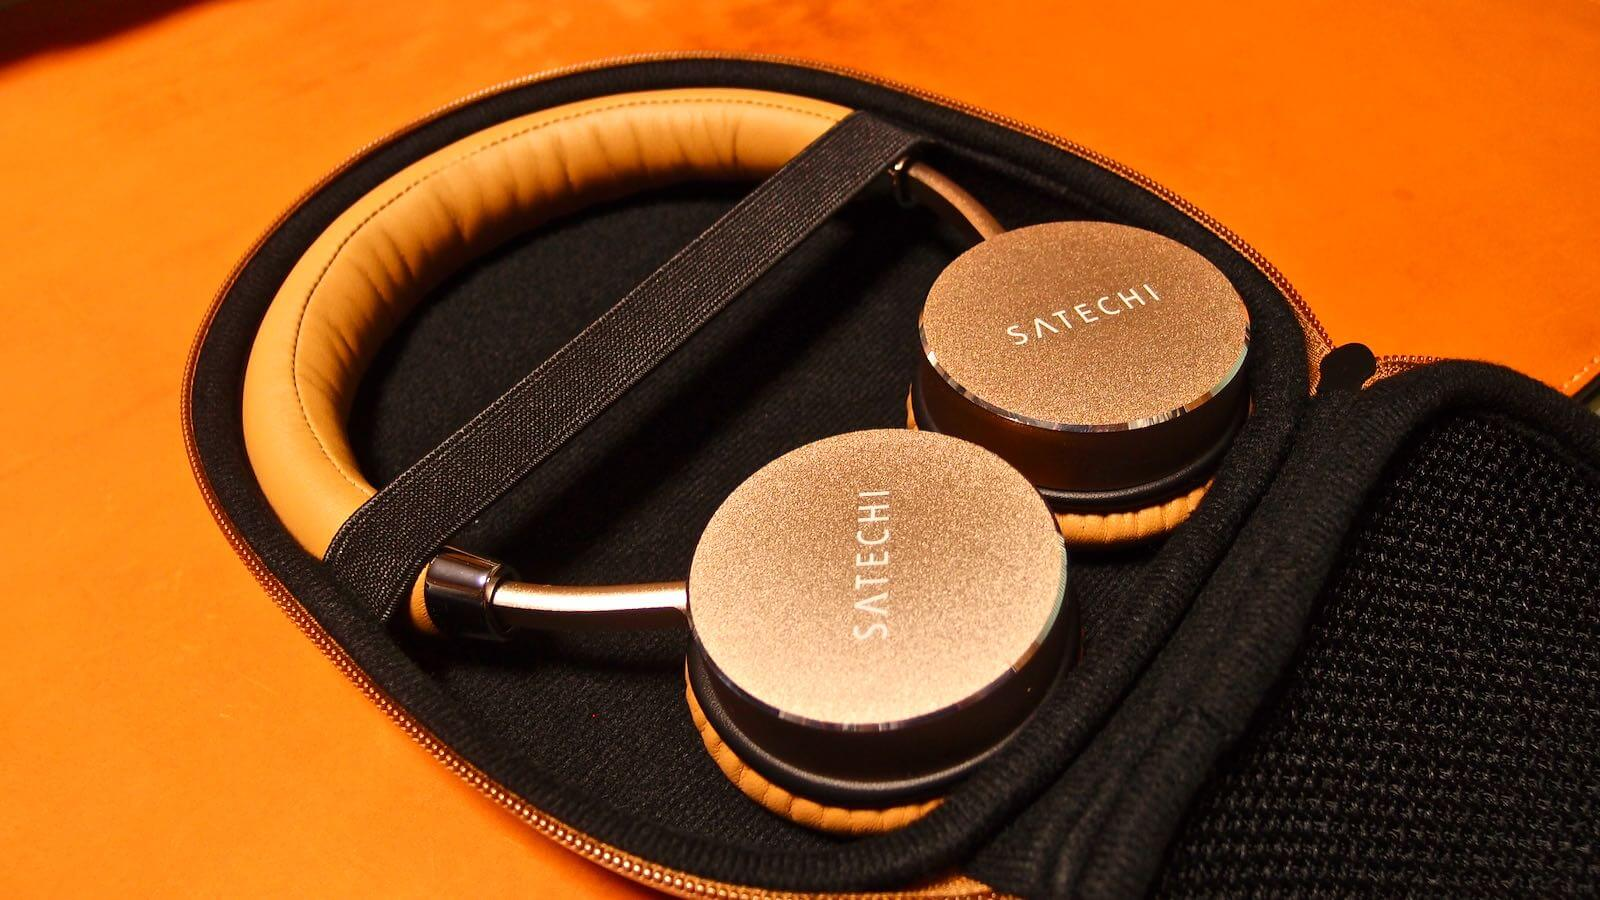 0159 Satechi s Headphones Hard Case Review 06